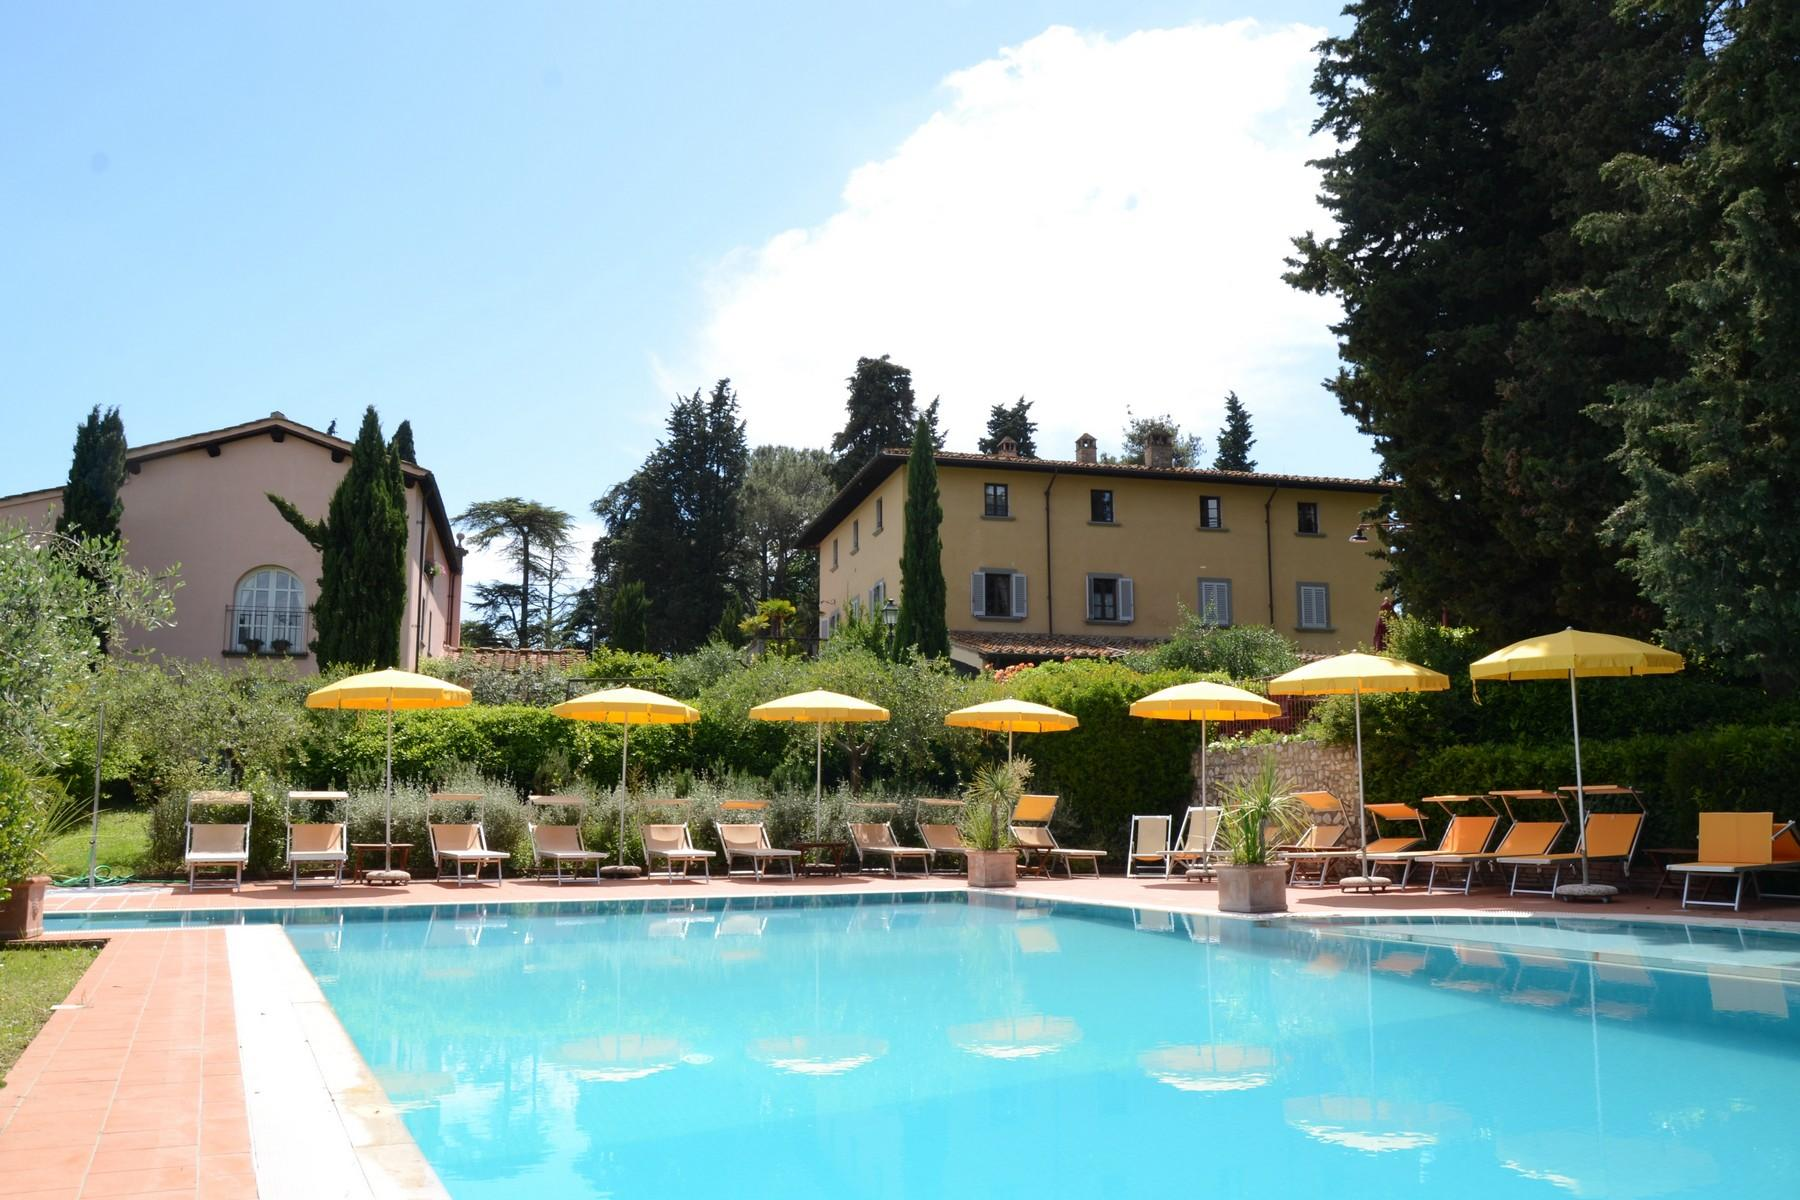 Charming holiday resort in the heart of Tuscany - 2